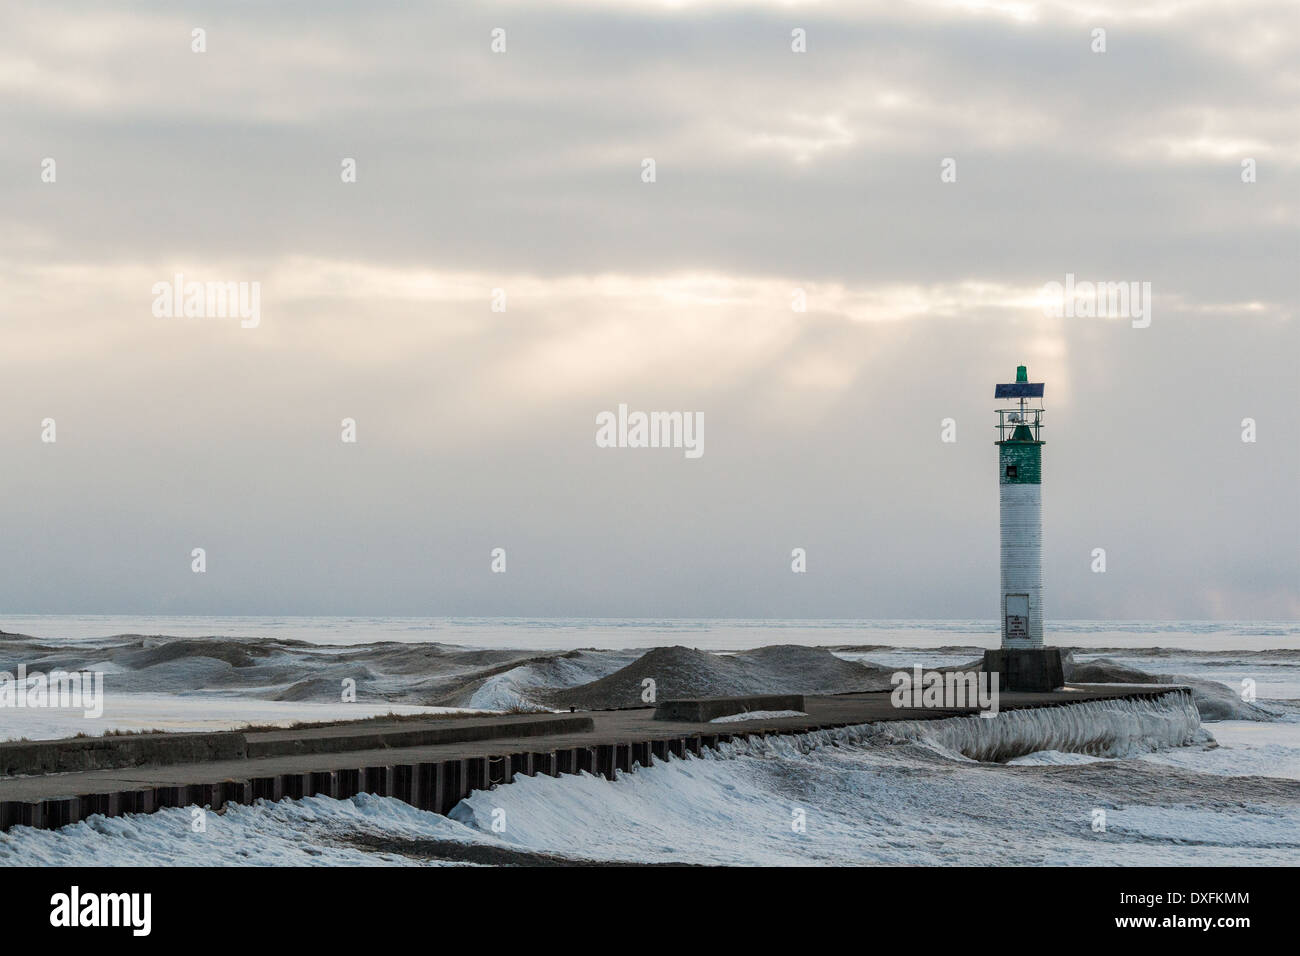 grand-bend-ontario-lighthouse-at-the-end-of-the-pier-as-the-sunsets-DXFKMM.jpg